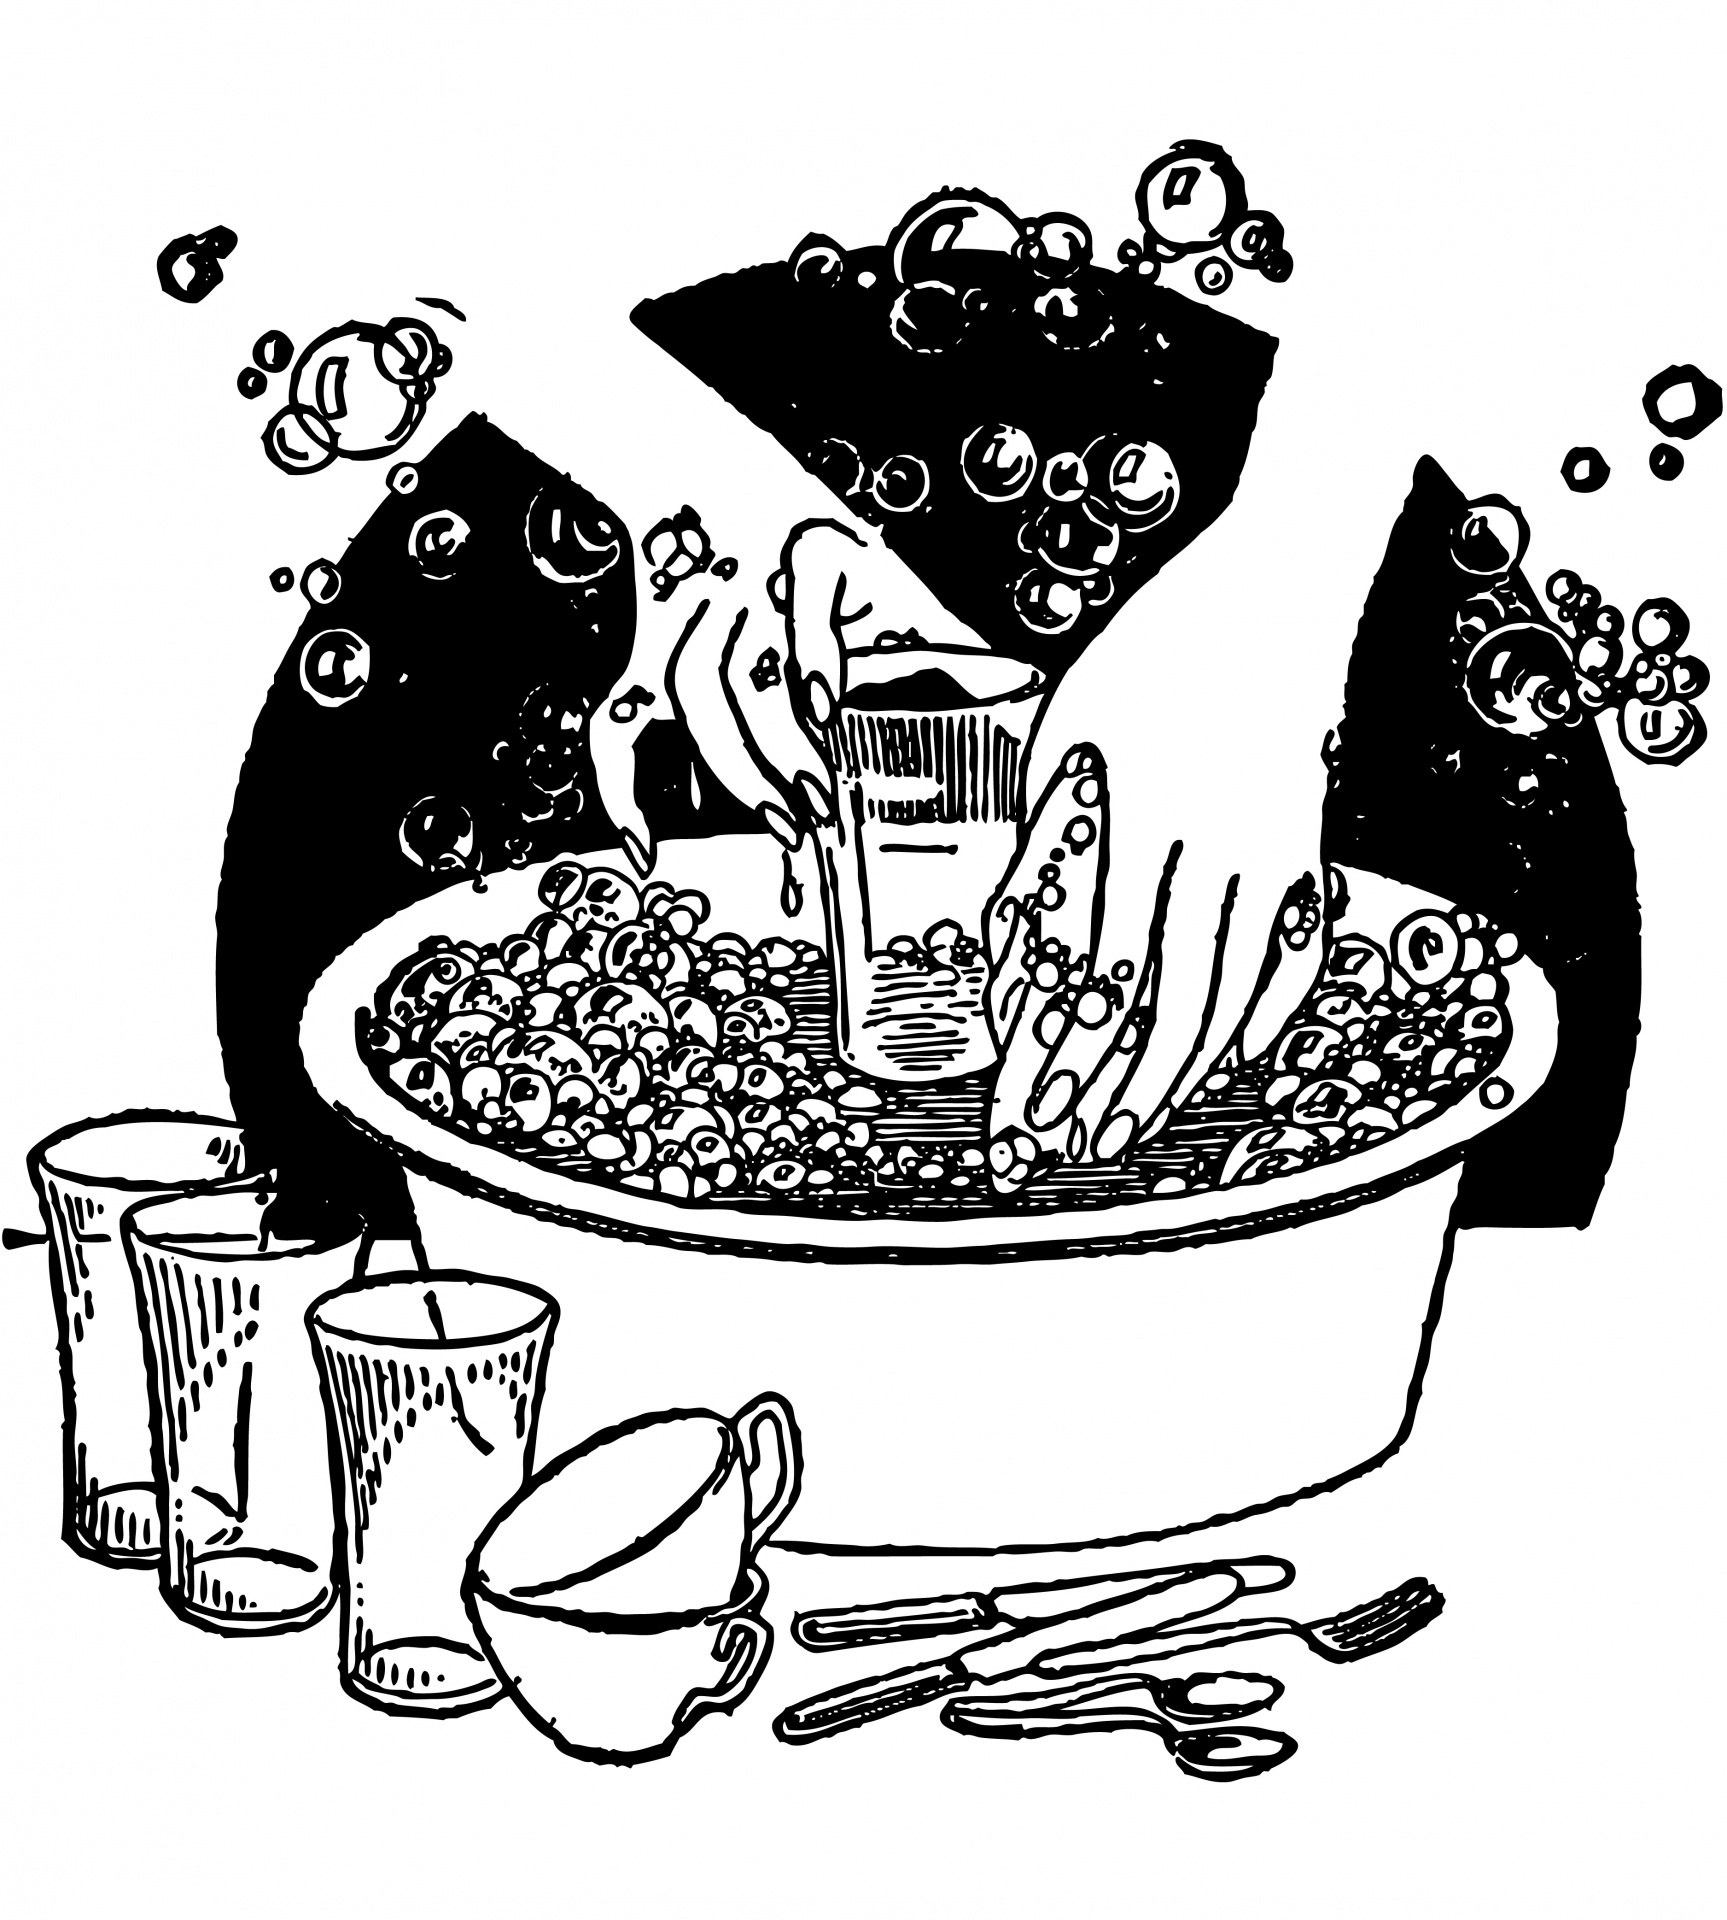 Washing dishes by hand clipart jpg freeuse download Washing Dishes Vintage Clipart Free Stock Photo - Public Domain ... jpg freeuse download